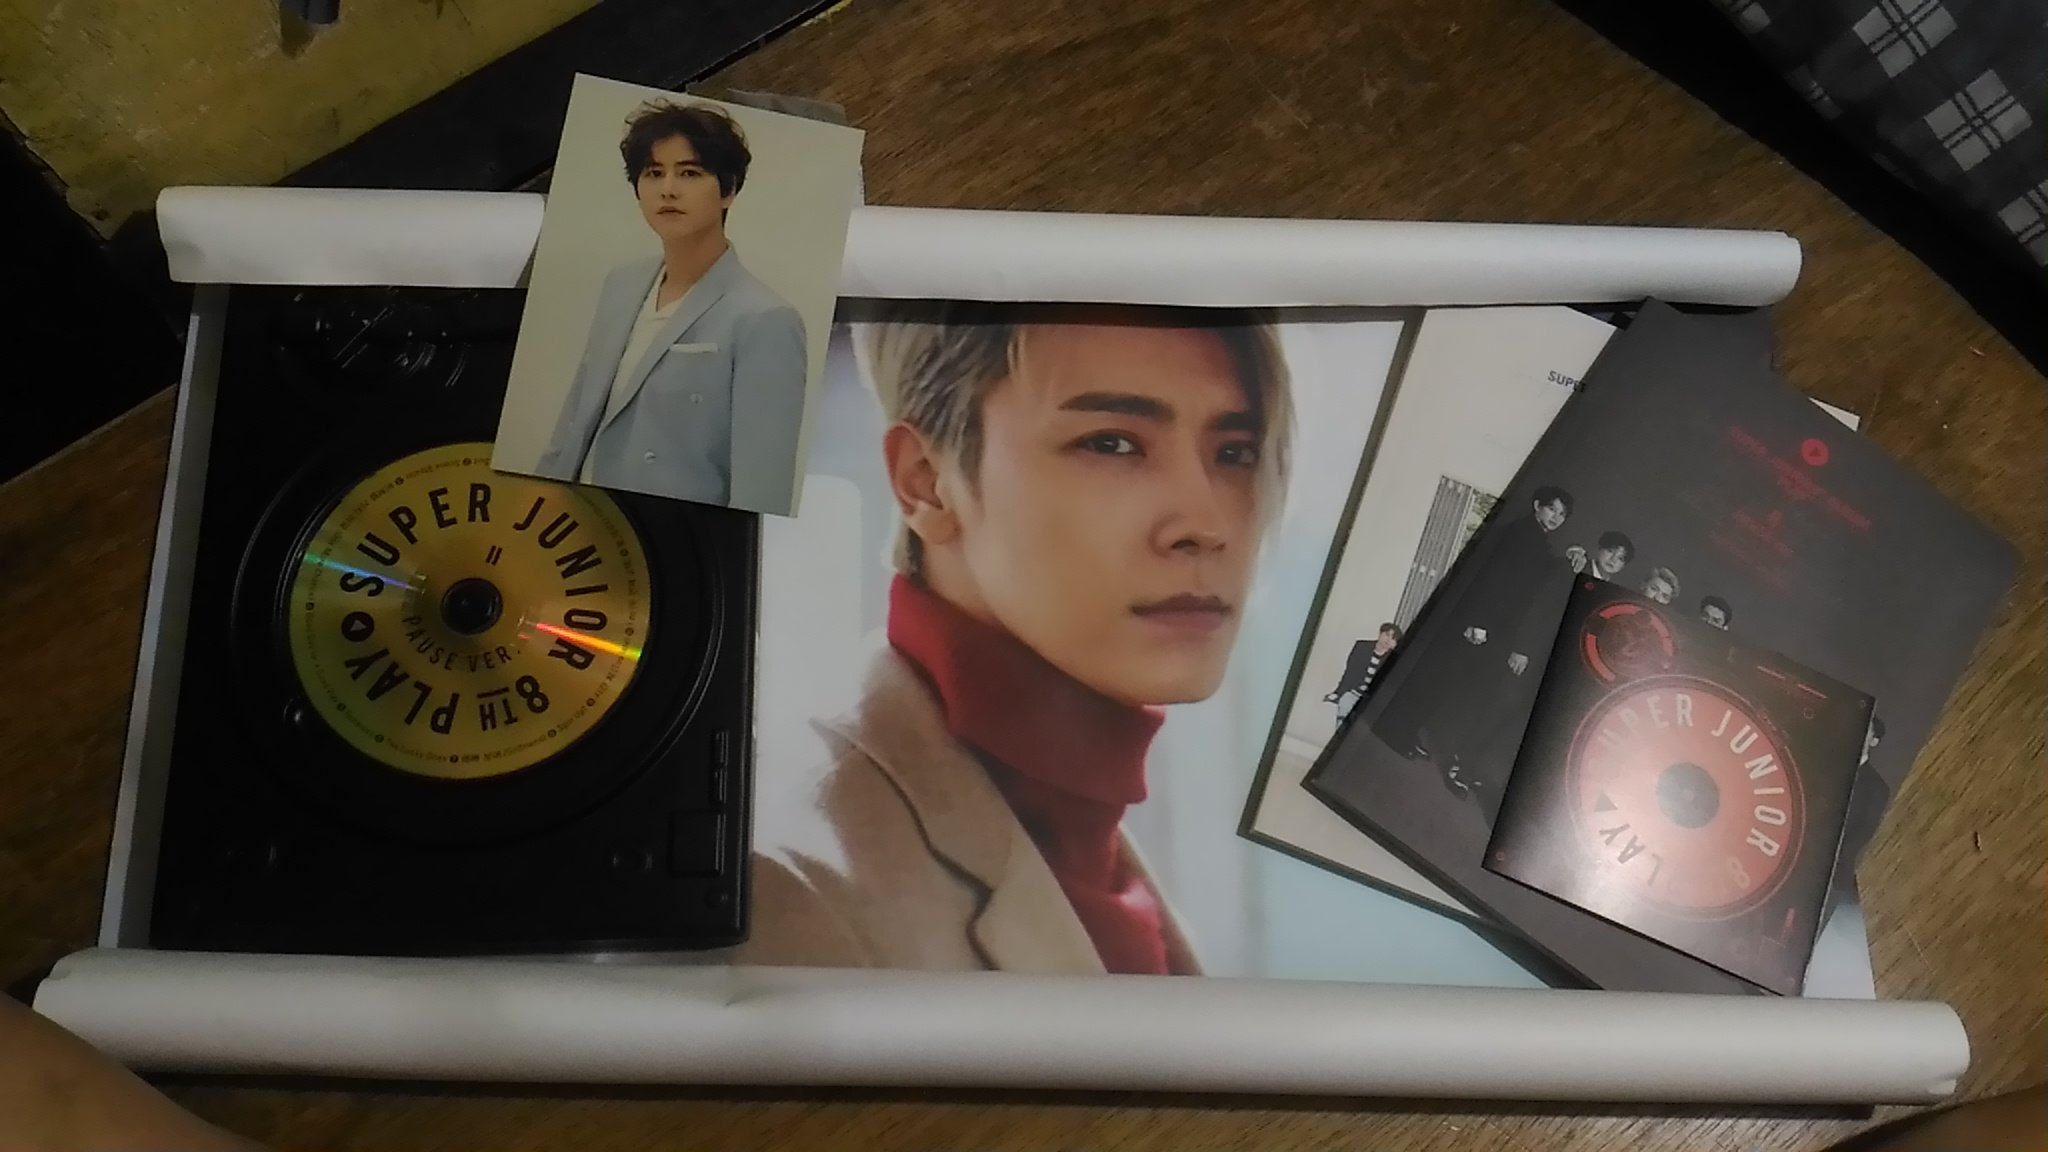 Only opened my Pause album today and look who we have here~ ���� #8jib #SuperJunior @GaemGyu @donghae861015 https://t.co/hlhVxuMfD1